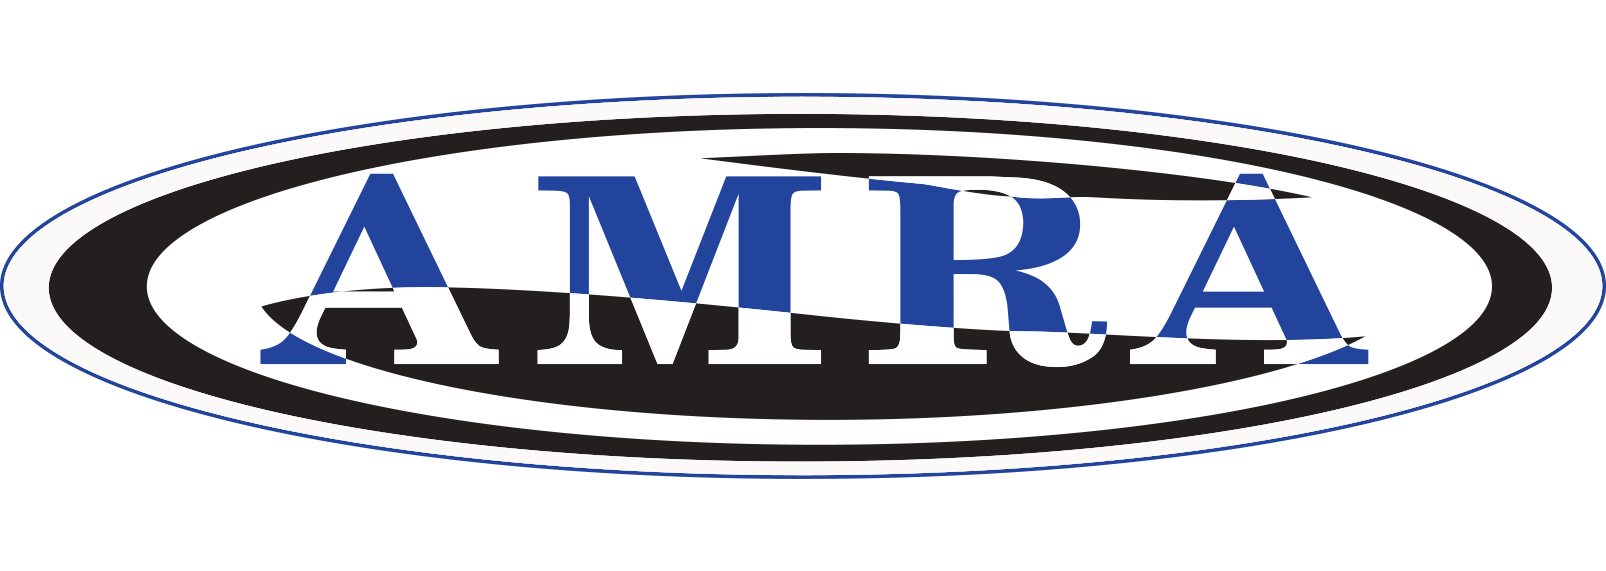 American Motorcycle Racing Association Rockingham, NC @ Rockingham Dragway